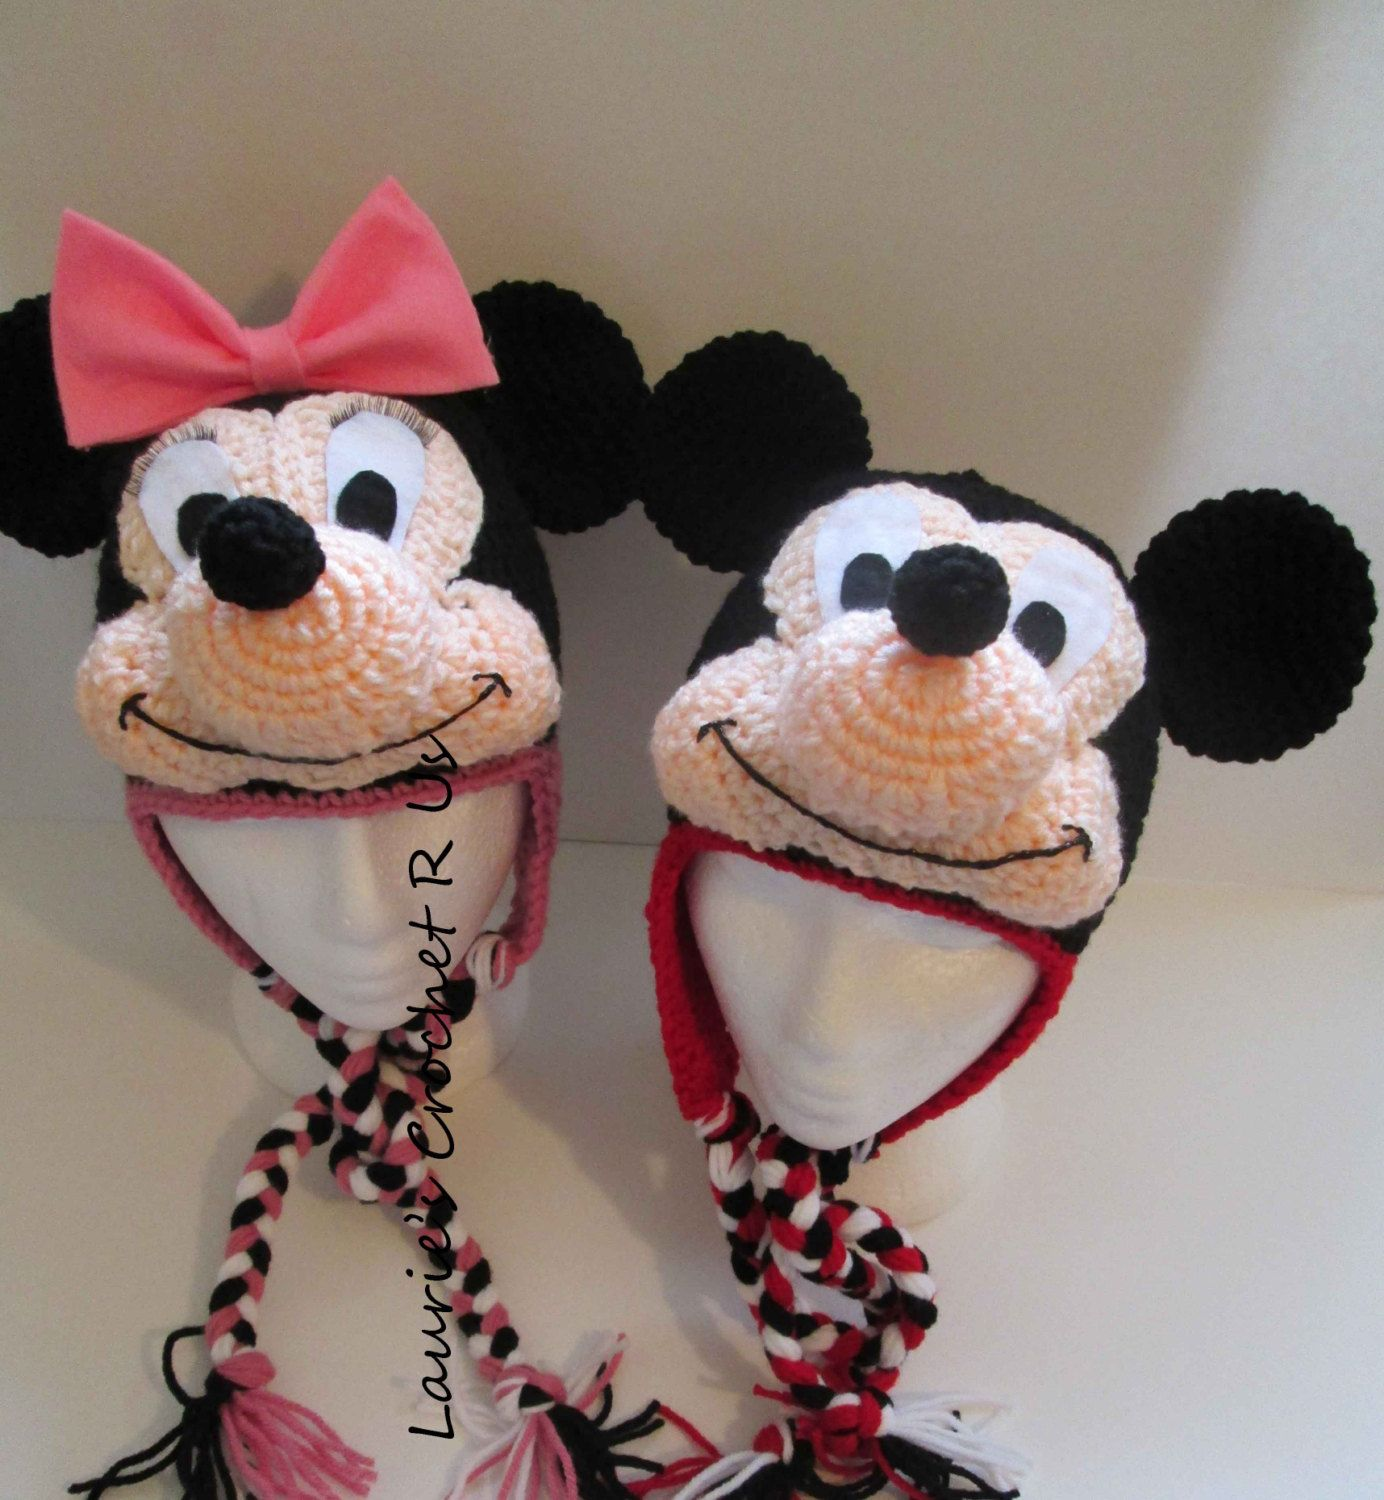 Pdfquality handmand crochet minnie mickey mouse inspired quality handmand crochet minnie mickey mouse inspired hat bankloansurffo Choice Image